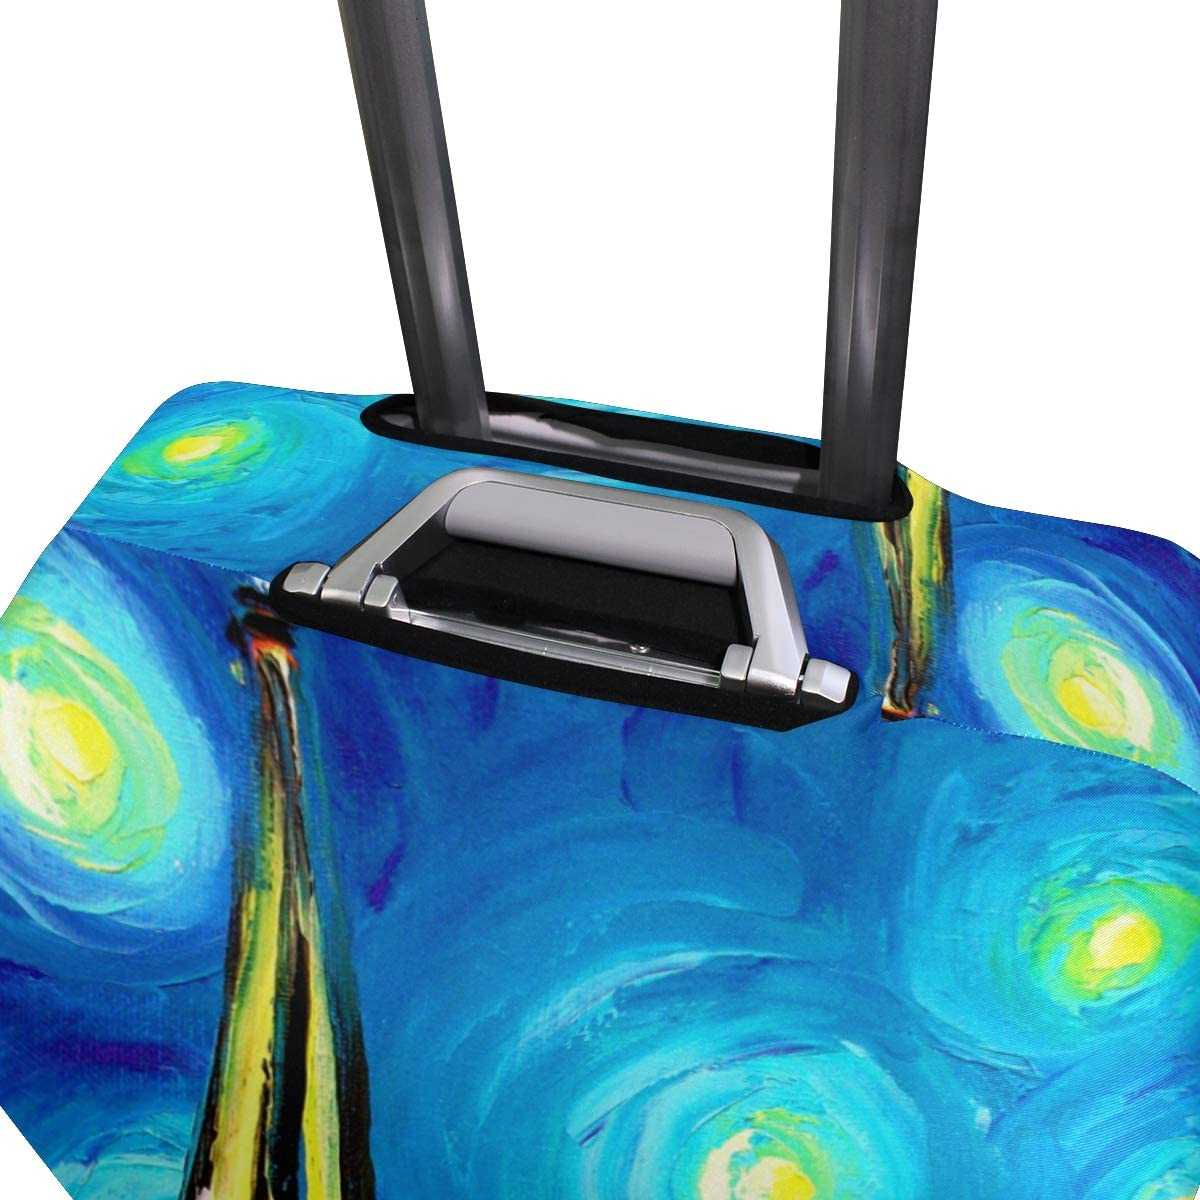 FOLPPLY Oil Painting Paris Eiffel Tower Luggage Cover Baggage Suitcase Travel Protector Fit for 18-32 Inch